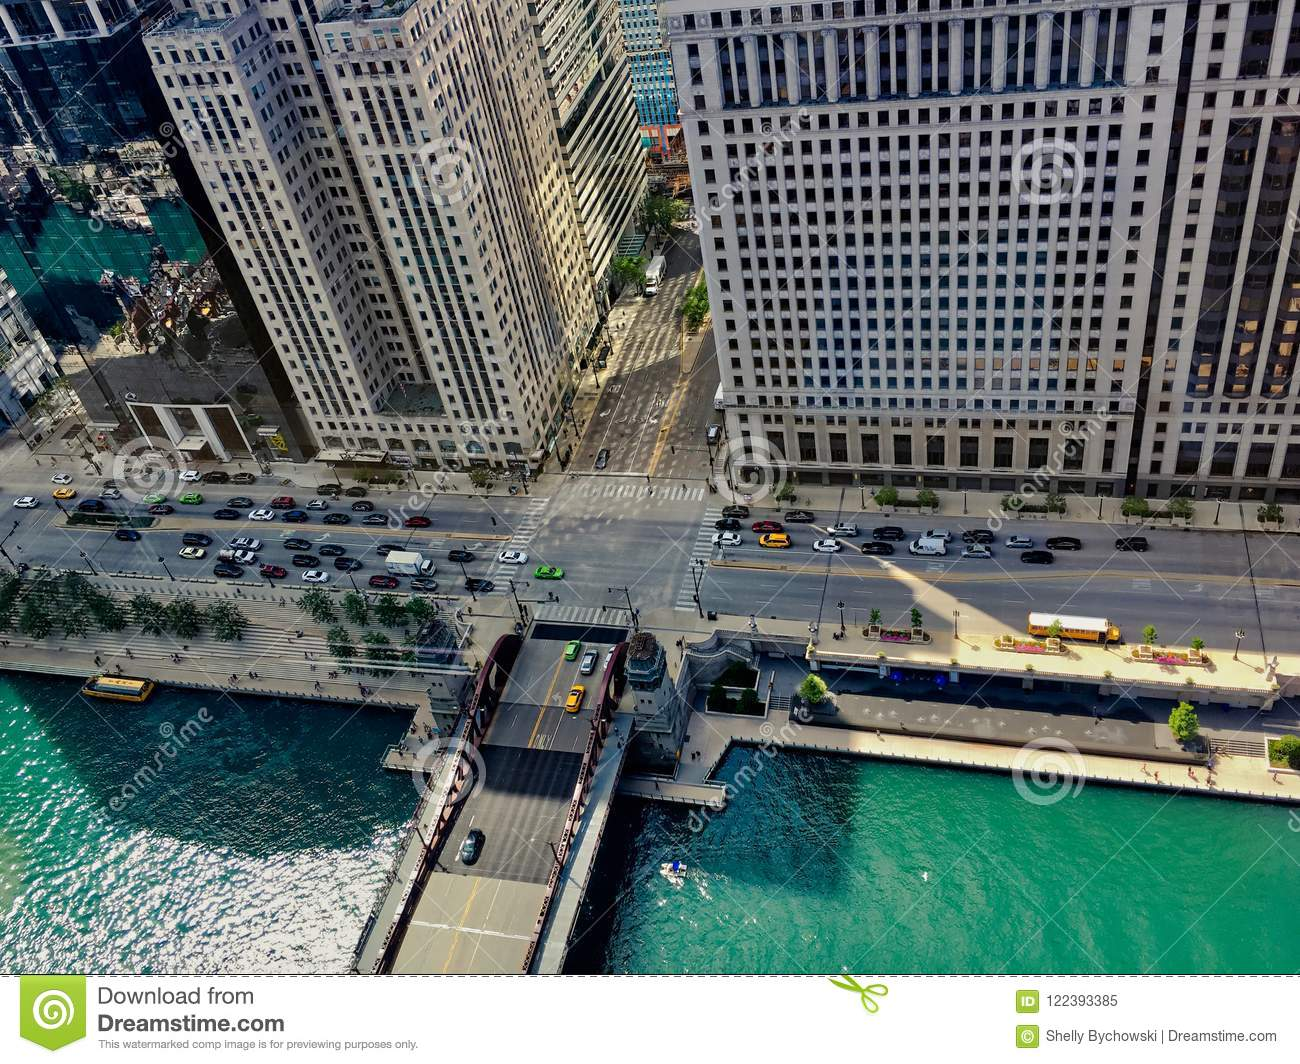 High angle view of summer in Chicago, including Chicago River, school bus, Wacker Drive, shadows cast off of buildings, etc